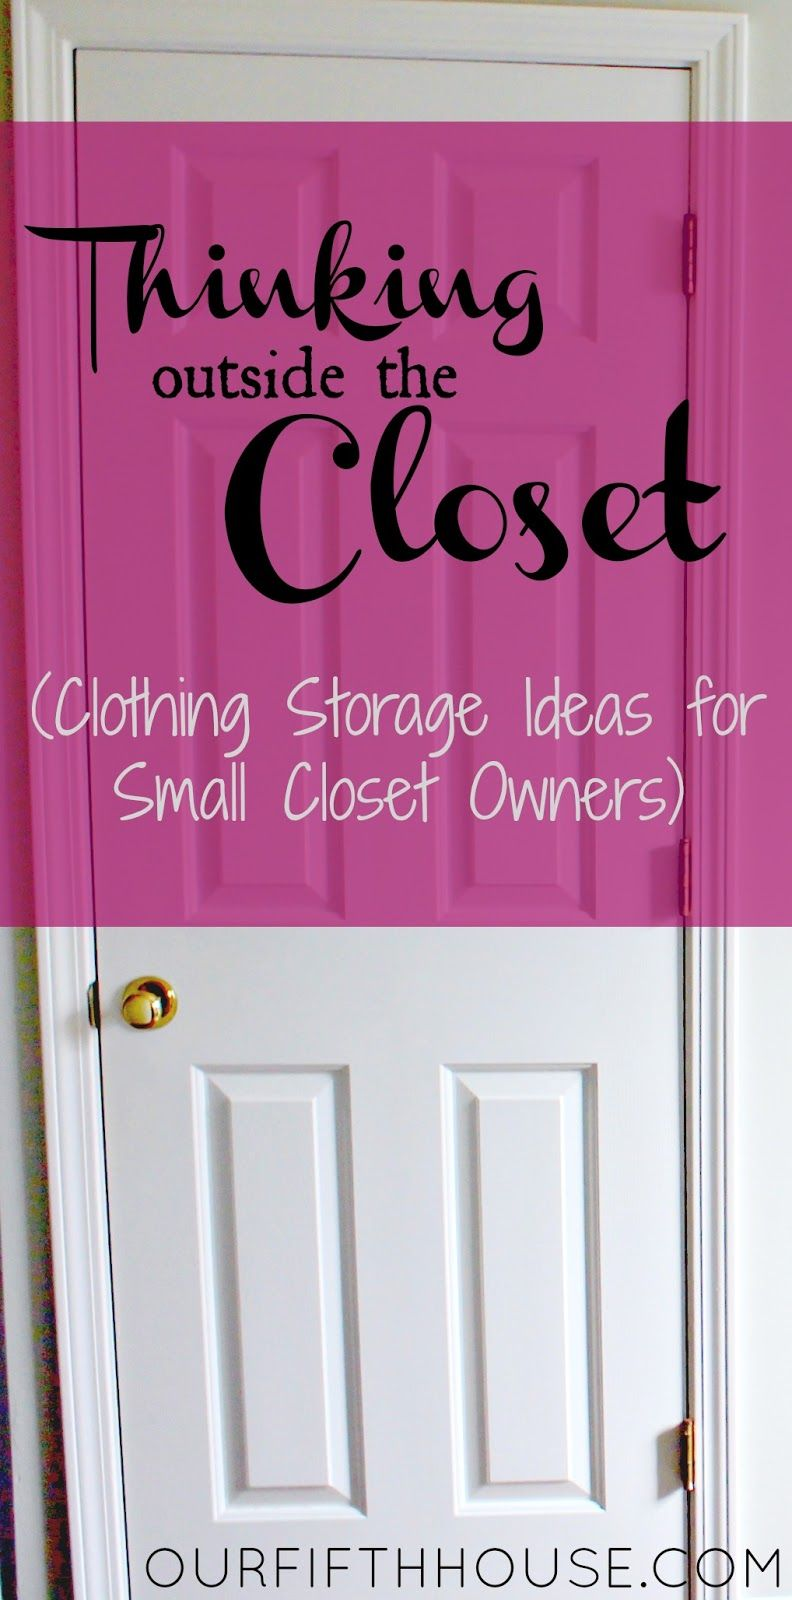 our fifth house  Thinking Outside the Closet  Clothing Storage Ideas for Small  Closet Owners. our fifth house  Thinking Outside the Closet  Clothing Storage